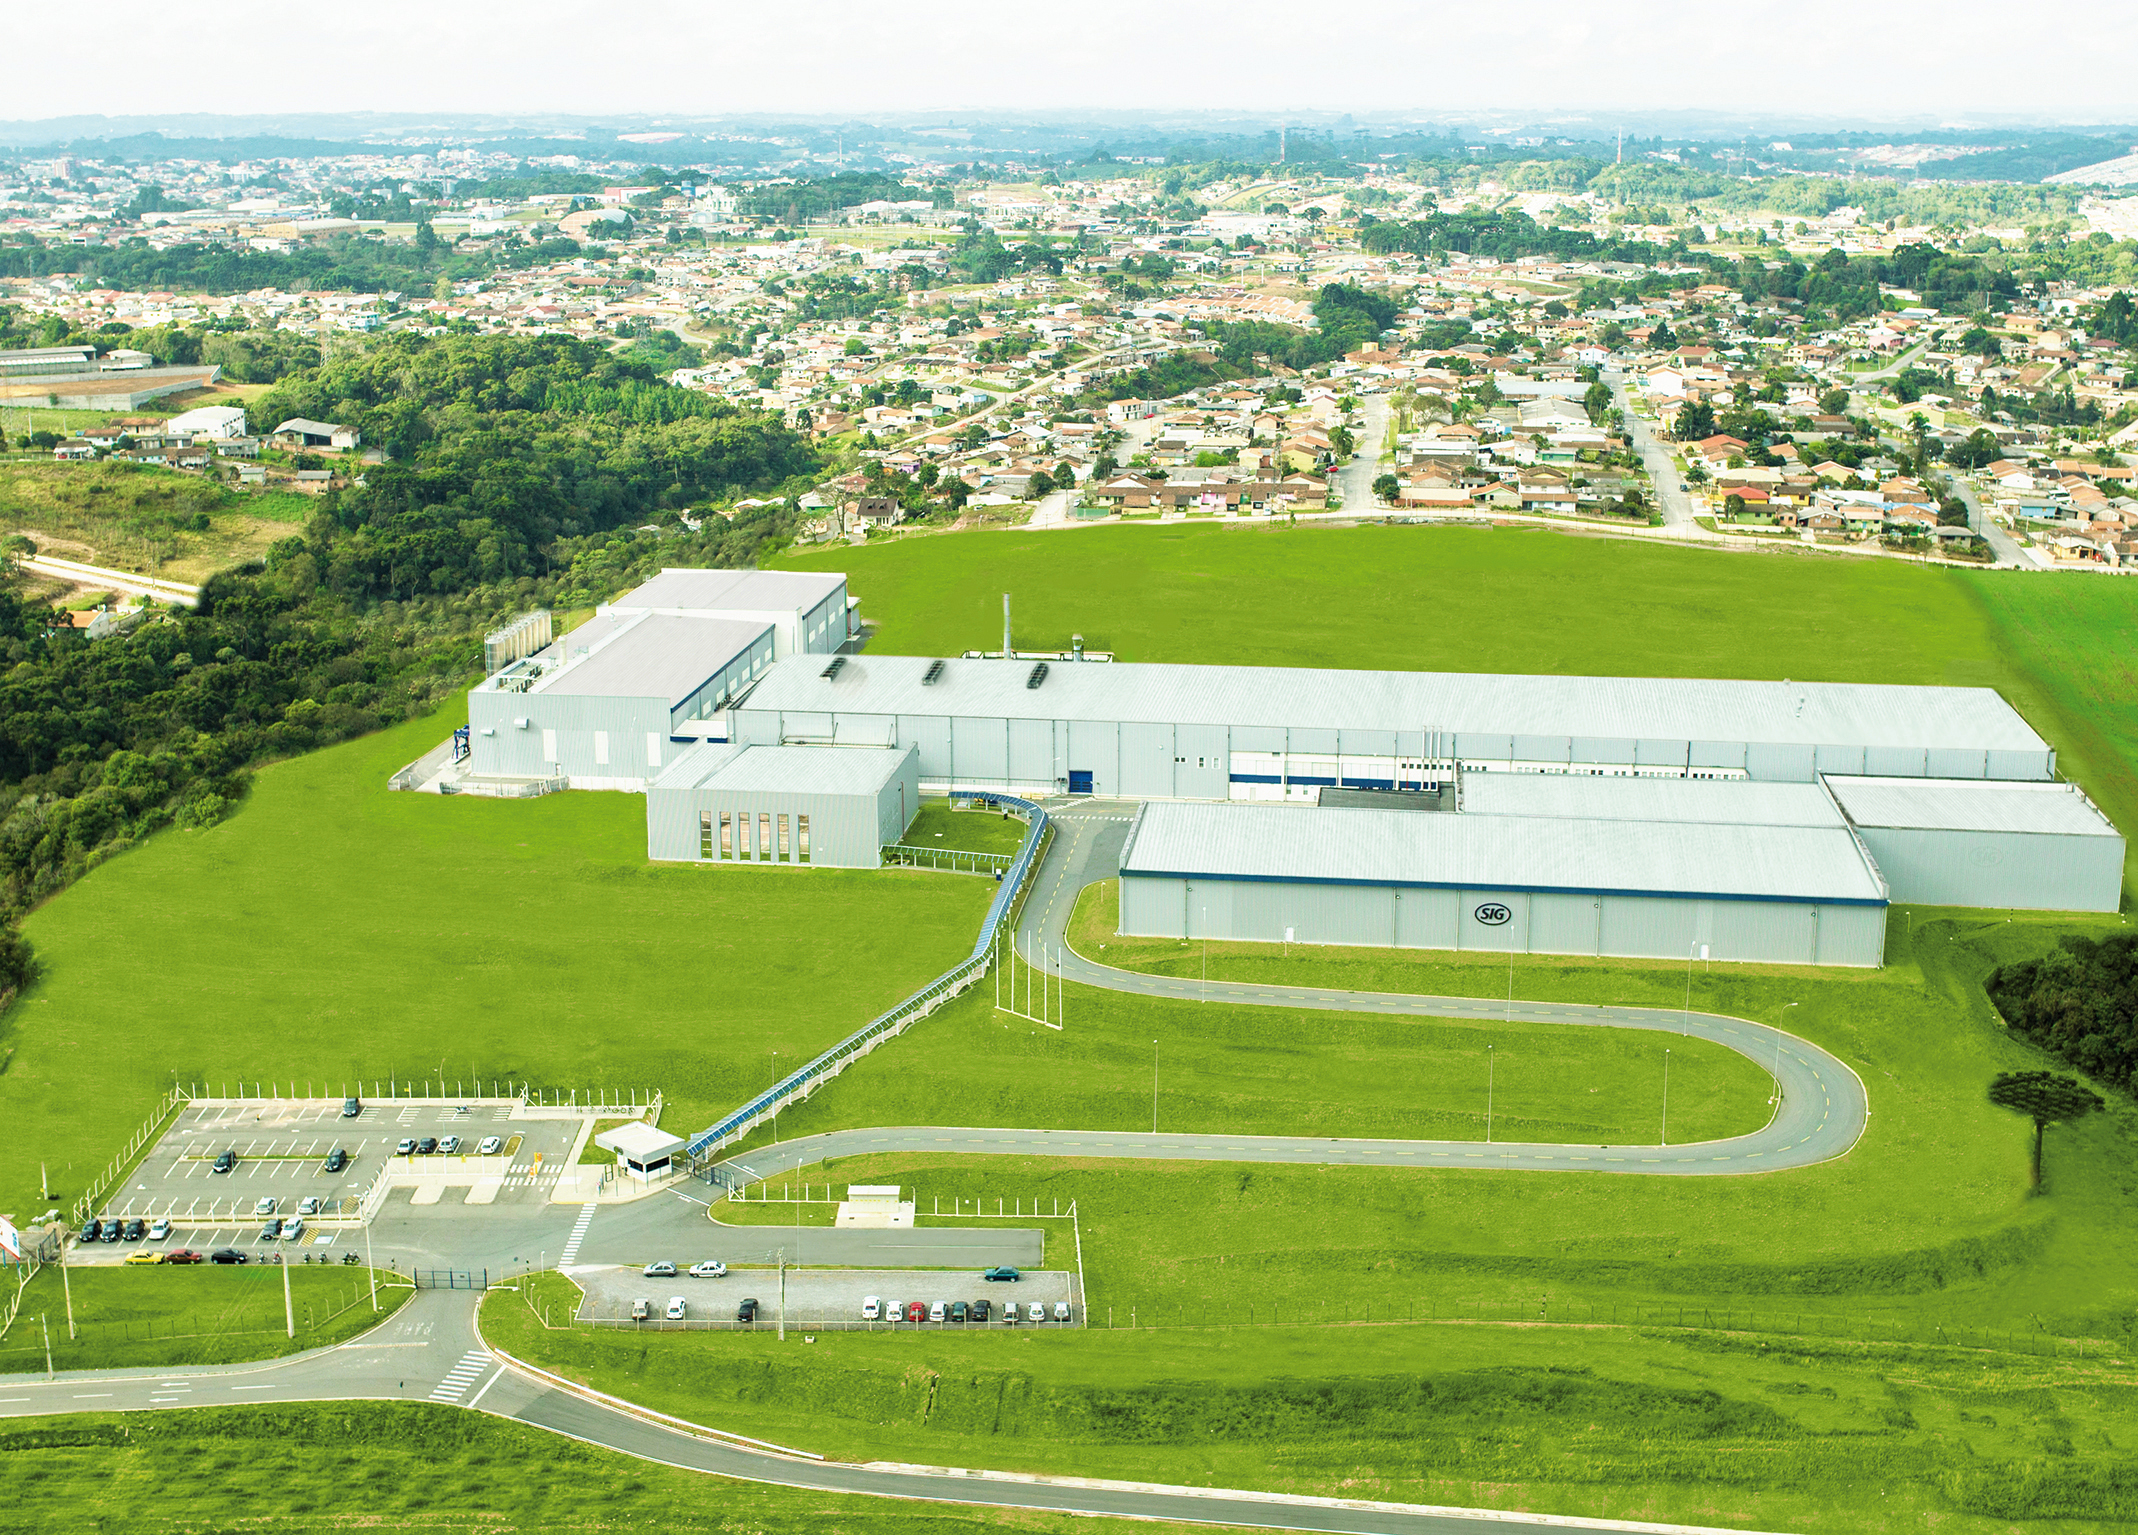 Green Electricity – Production Plant Brazil: